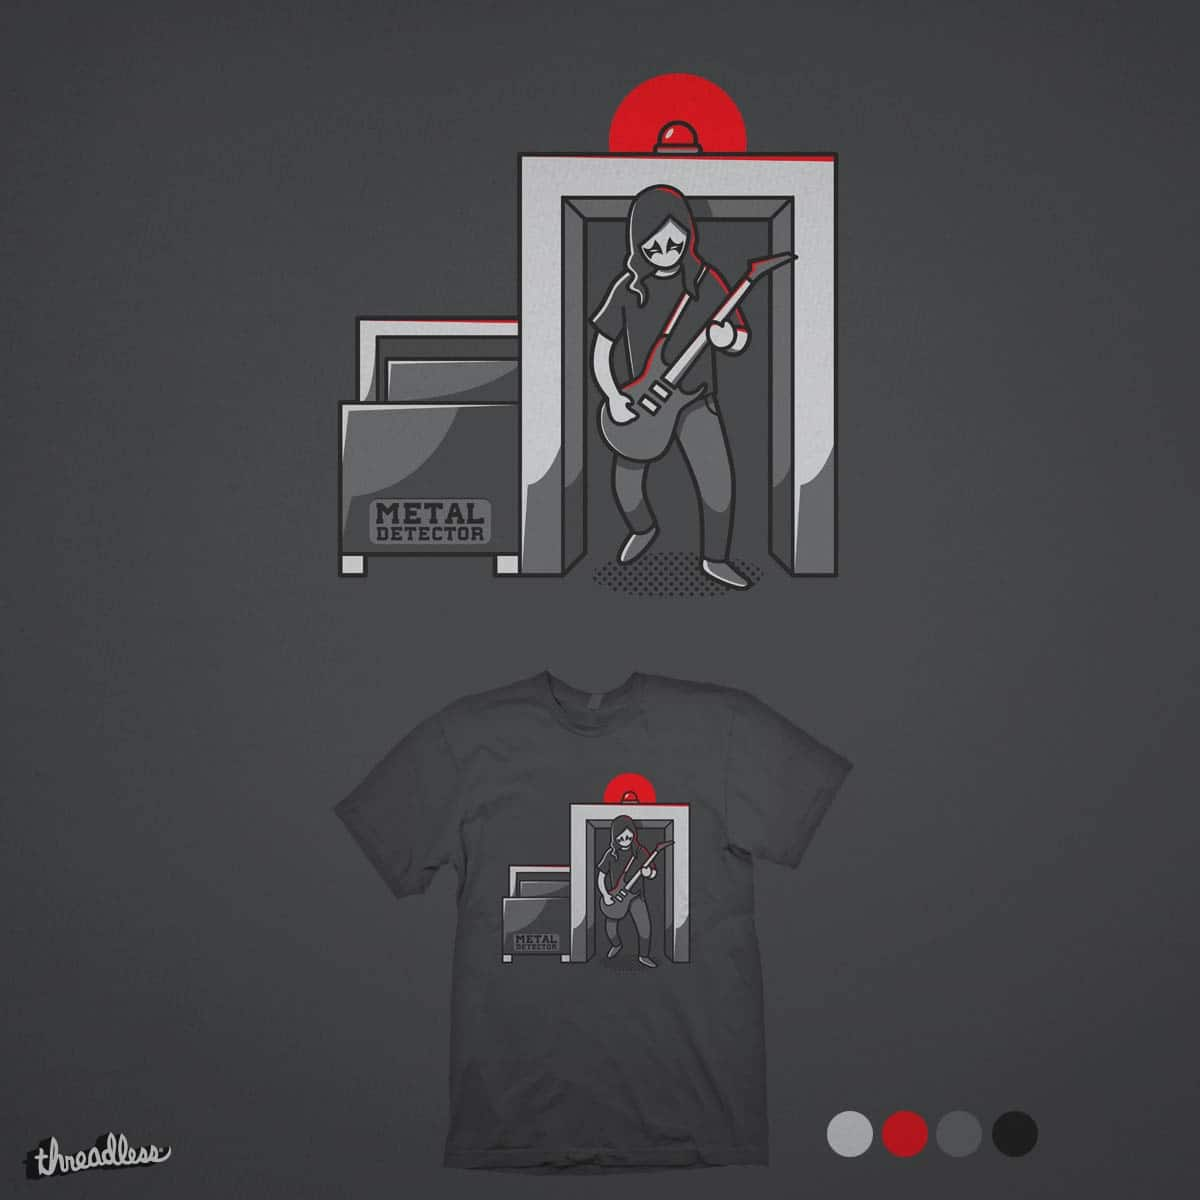 Metal detector by solechan on Threadless